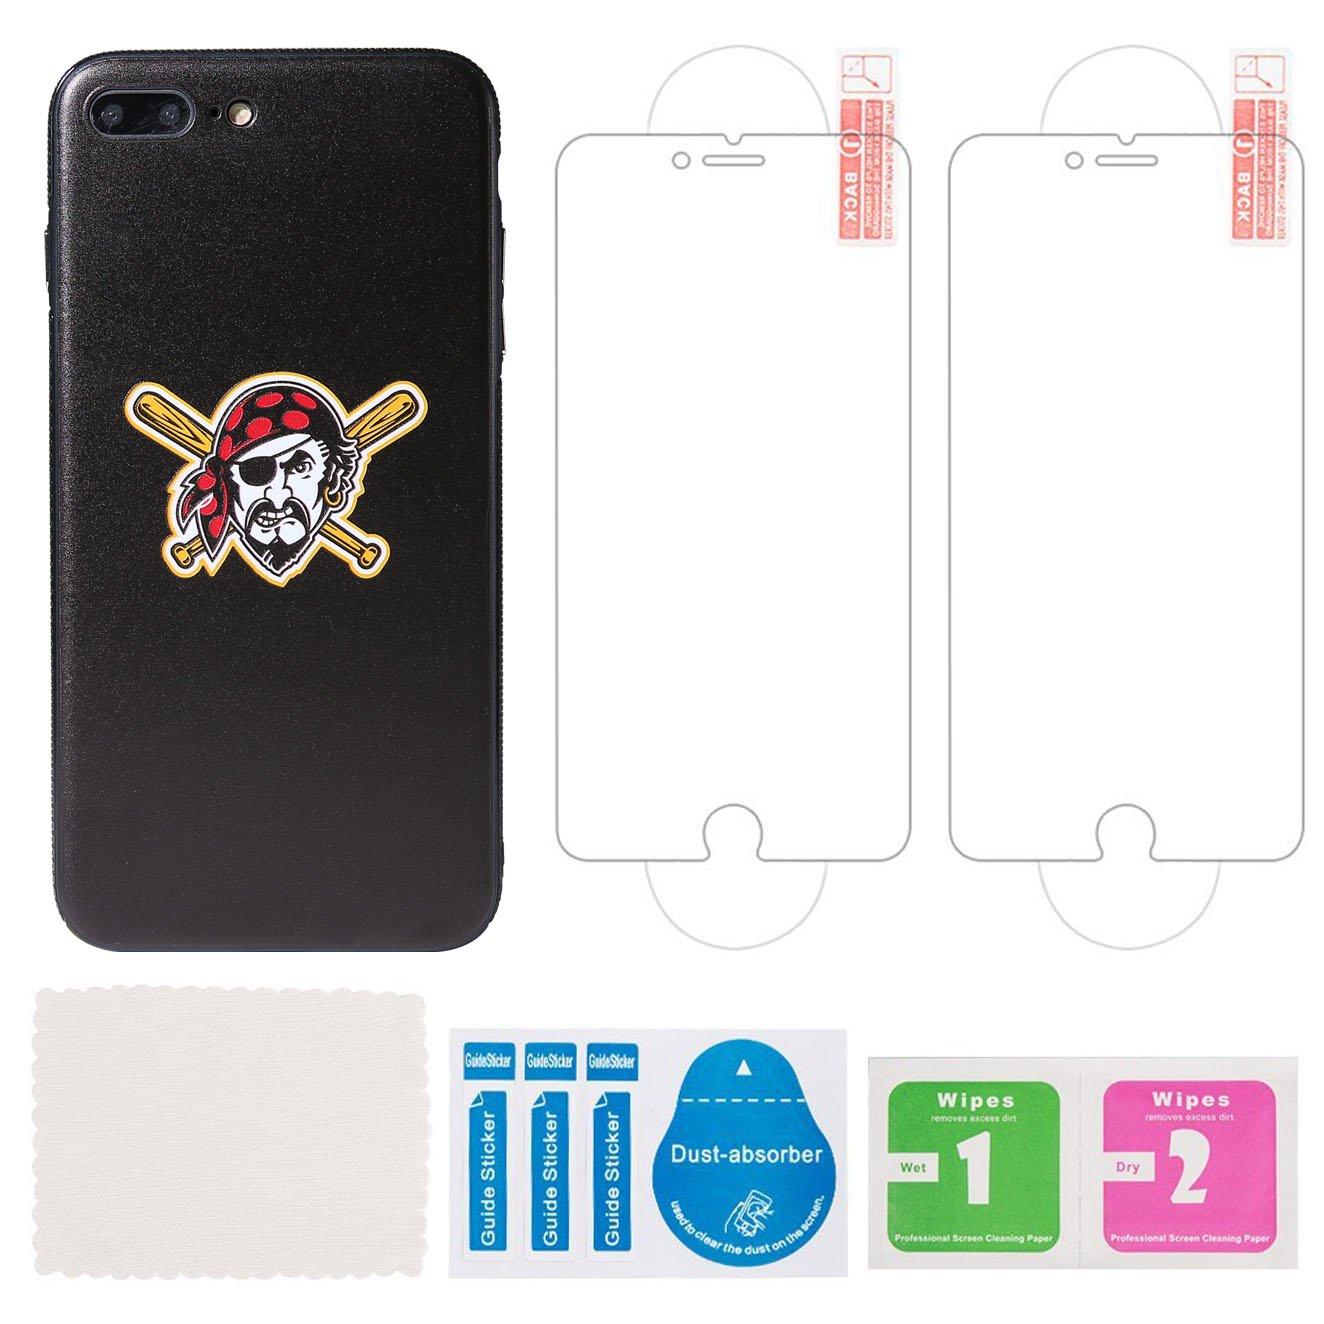 "for iPhone 7 Plus//iPhone 8 Plus 5.5/"" Sportula MLB Phone Case Matching 2 Premium Screen Protectors Extra Value Set Tampa Bay Ray"